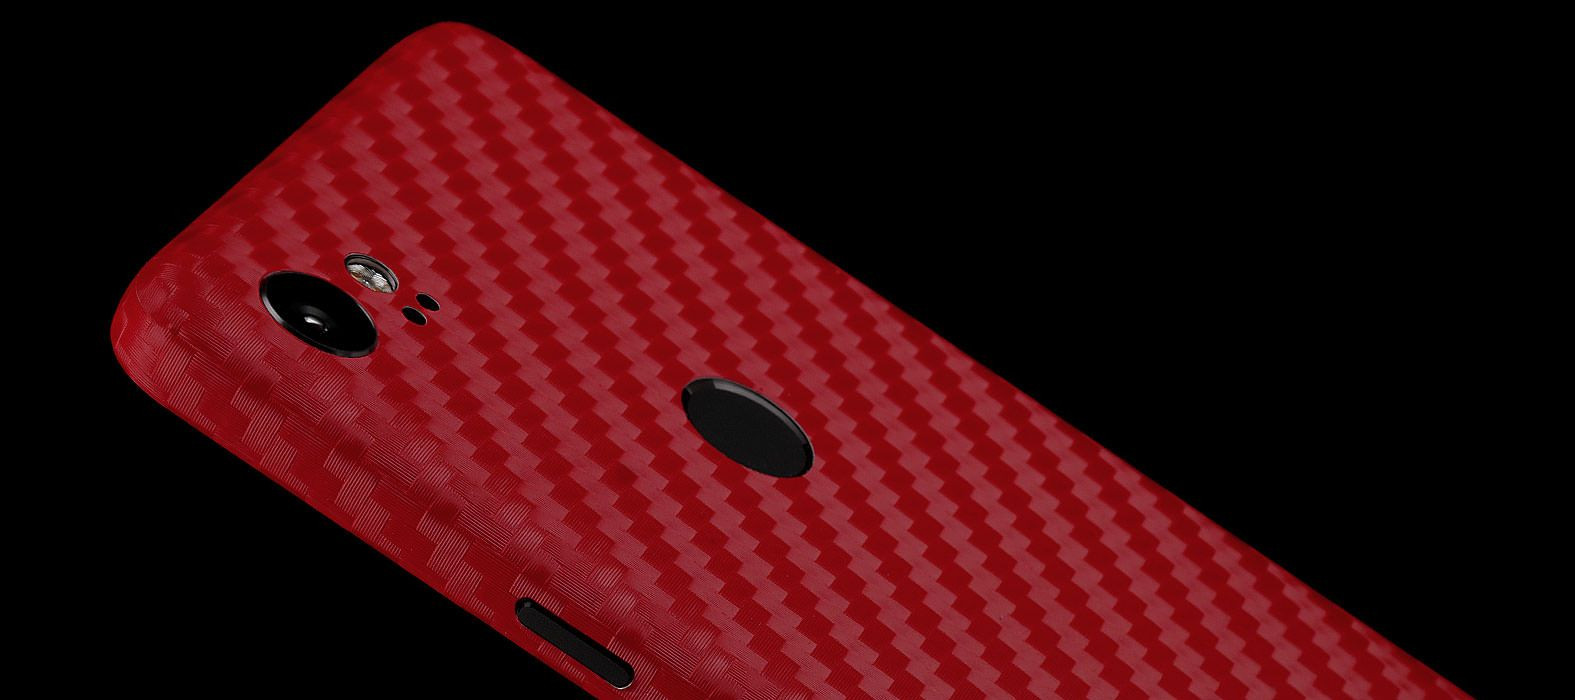 Pixel 2 XL Skins Red Carbon Fiber Wraps & Decals